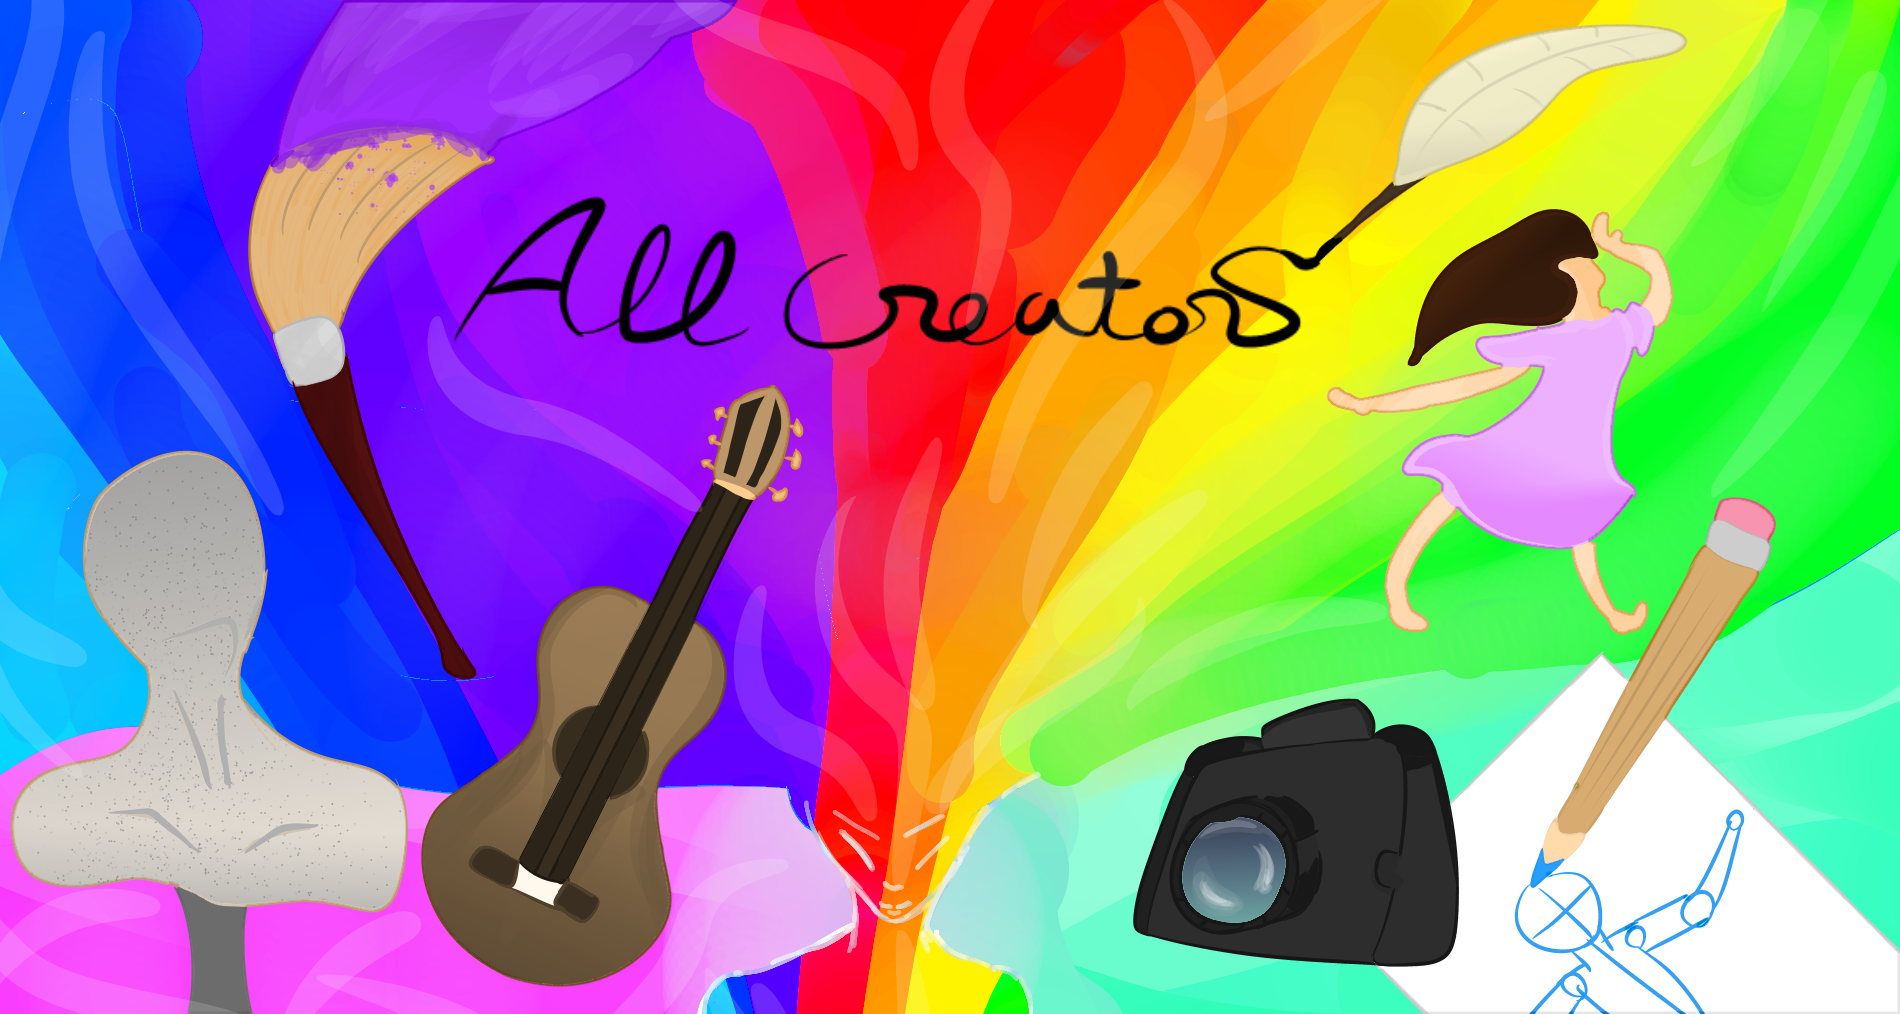 New Banner Group: All Creators by FaridCreator